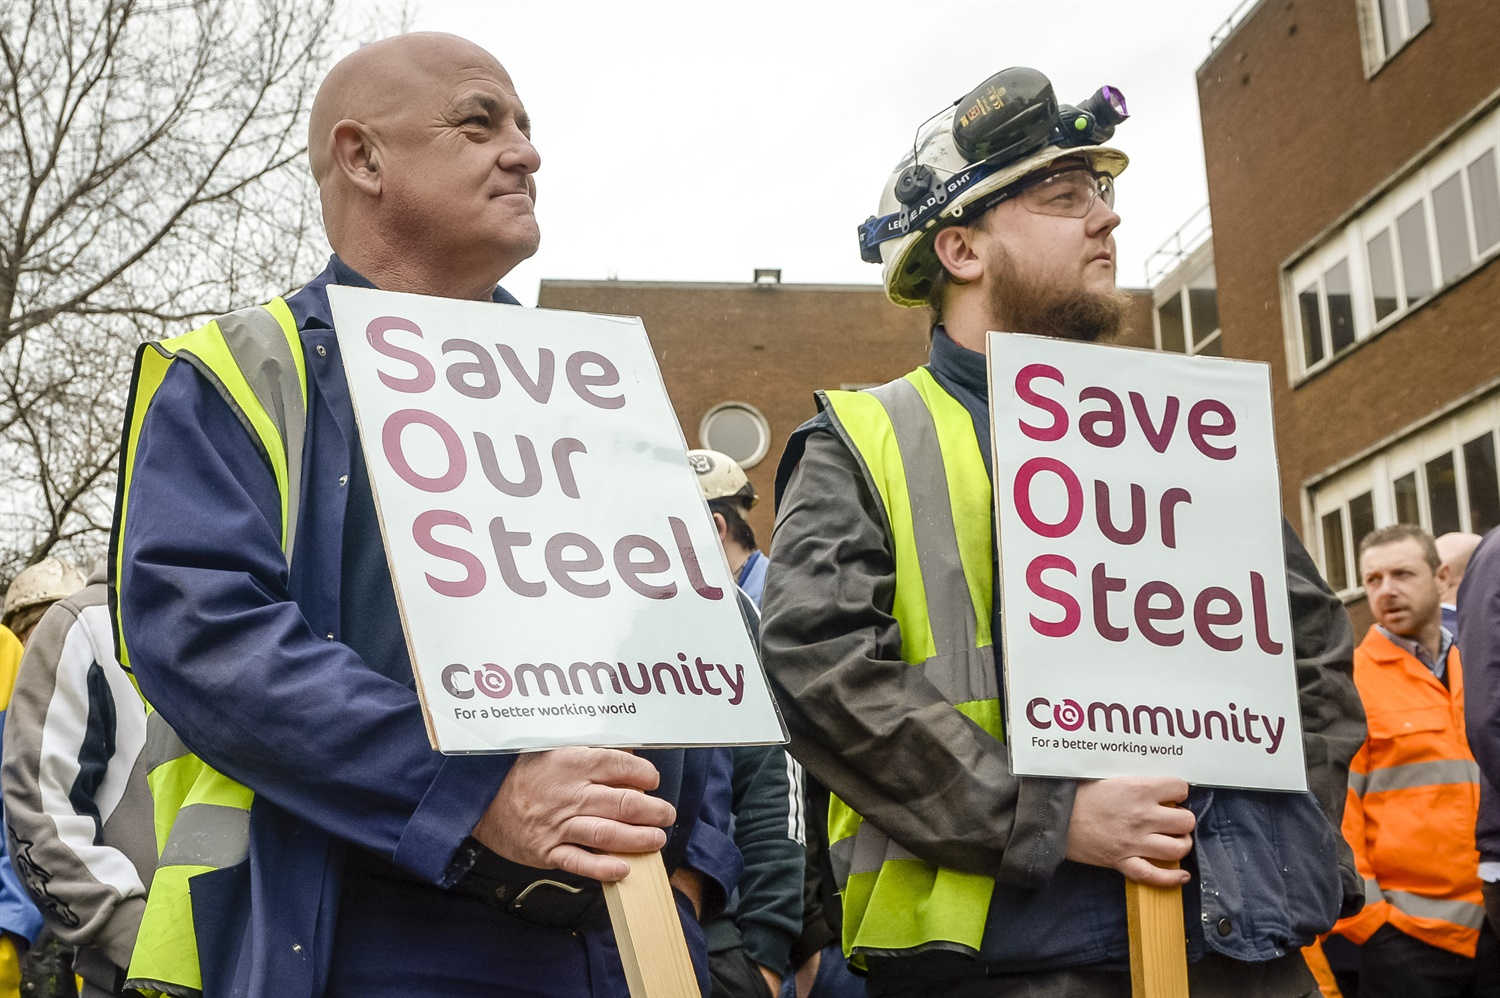 British steel industry to compete equally for HS2 contracts under new measures